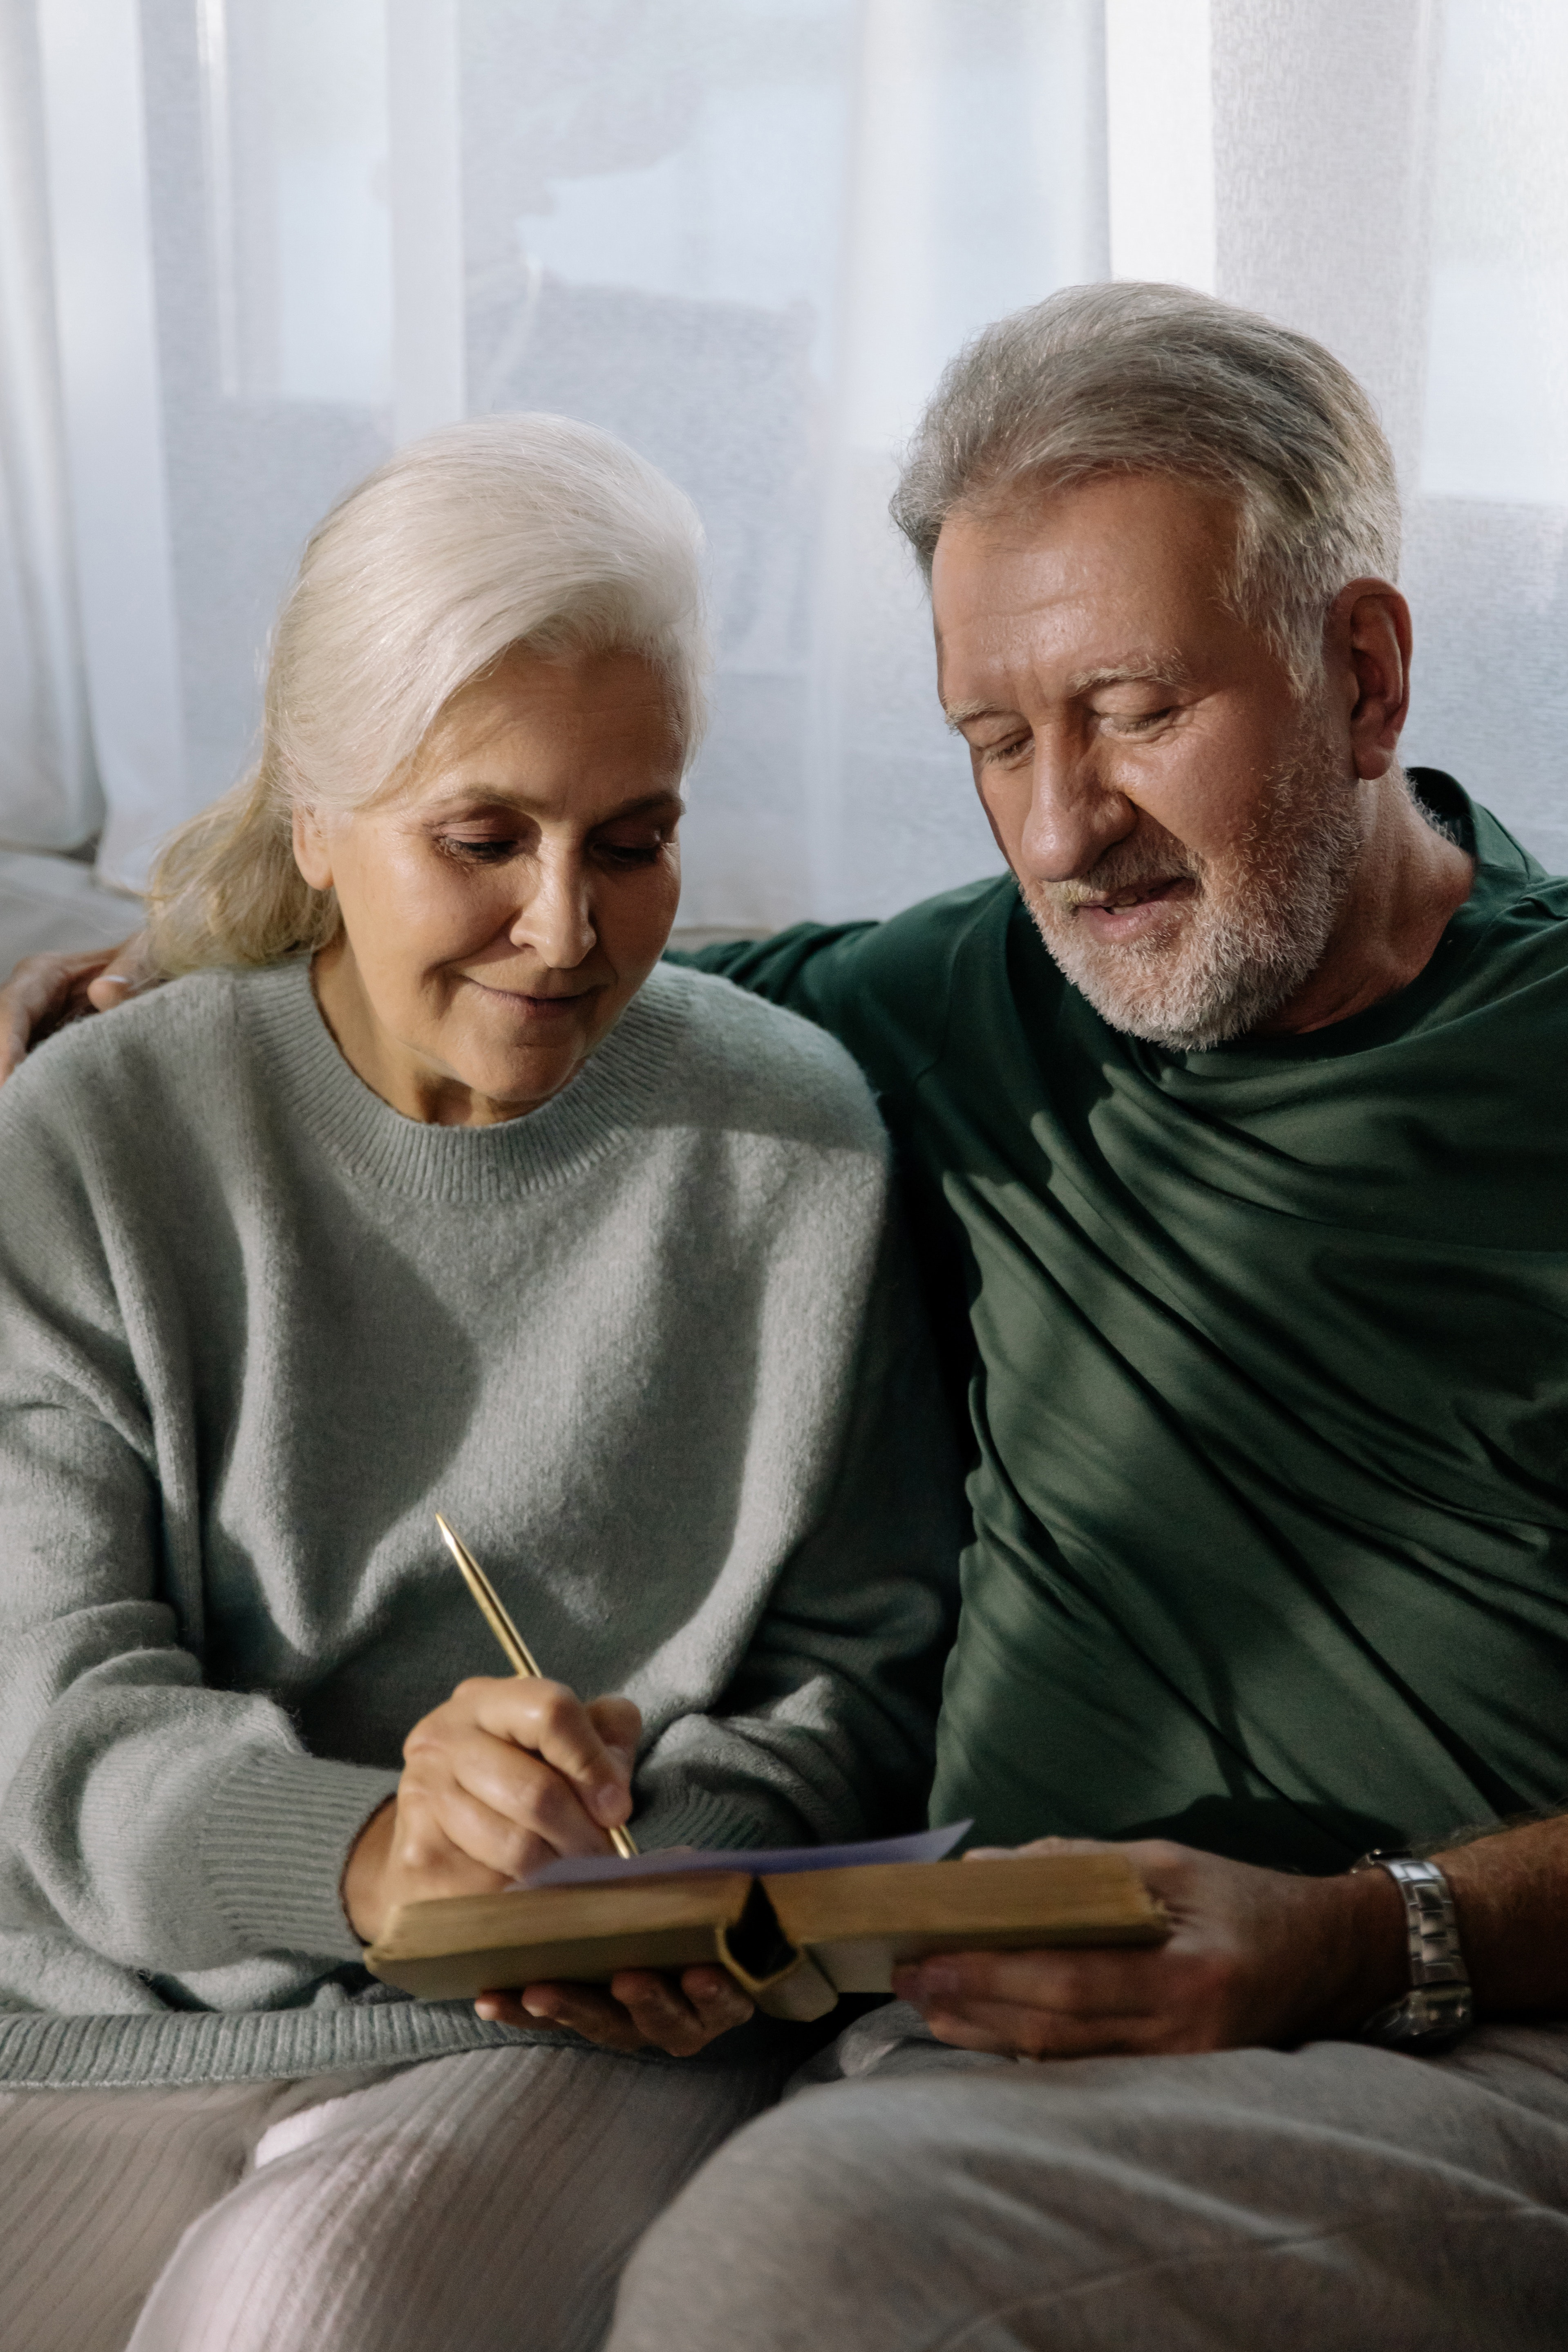 Two elderly people reading together